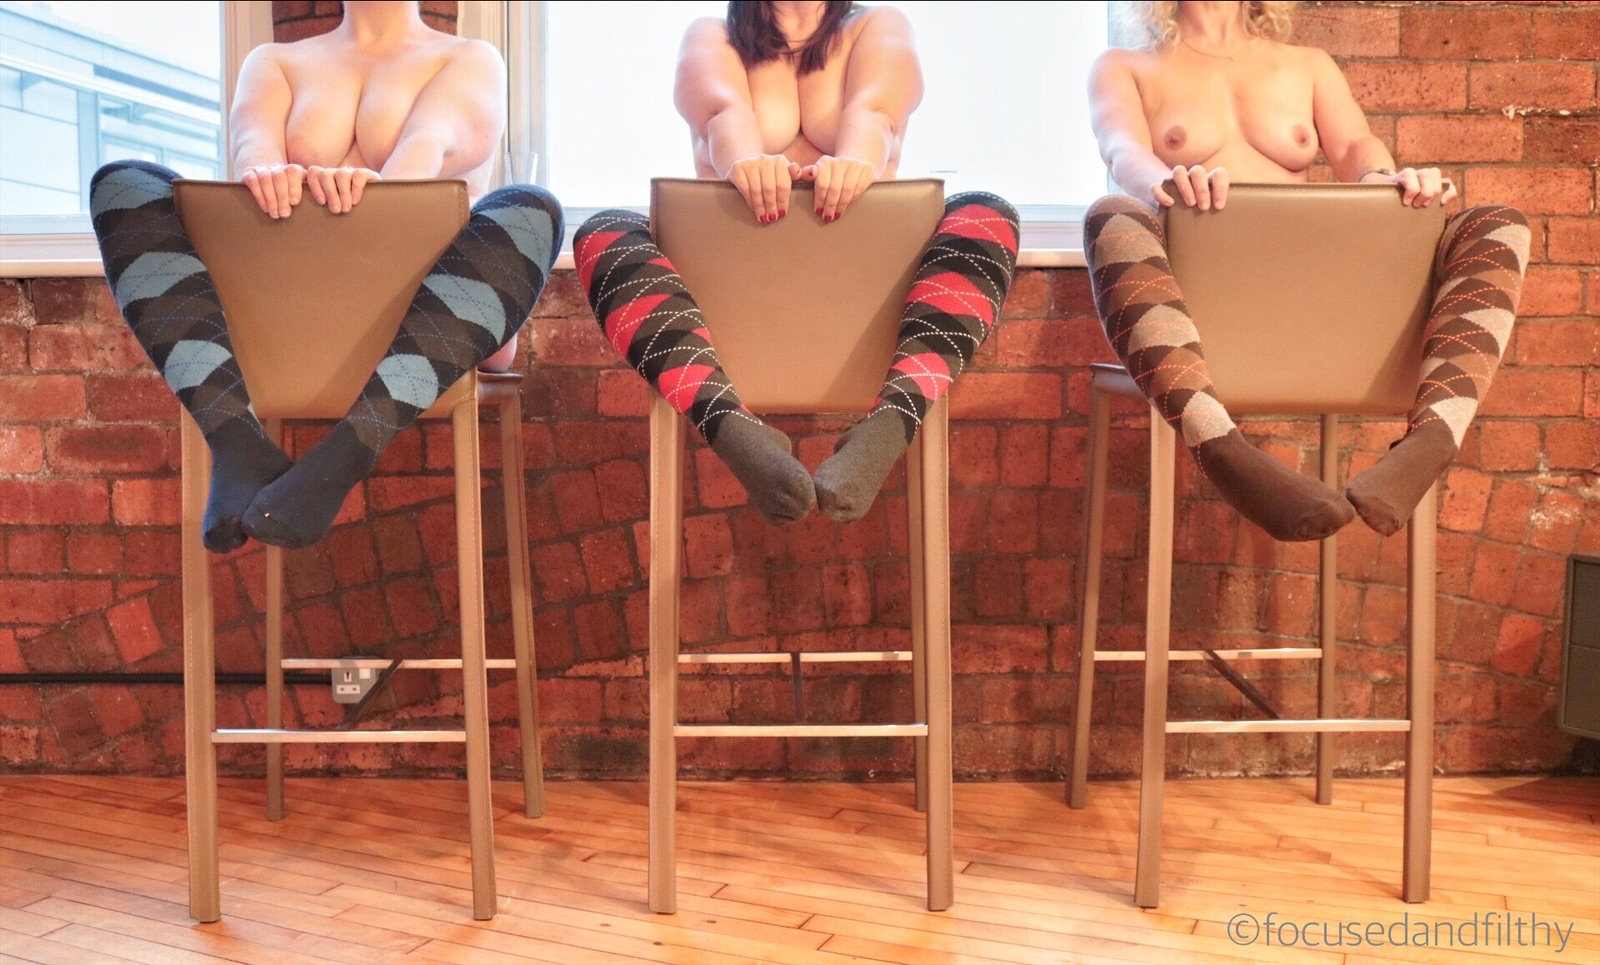 Colour photograph of three women sitting on three backward bar stools against a red brick wall. They are naked apart from long coloured argyle socks and their are leaning back with their feet up and toes touching in the middle knees opened.